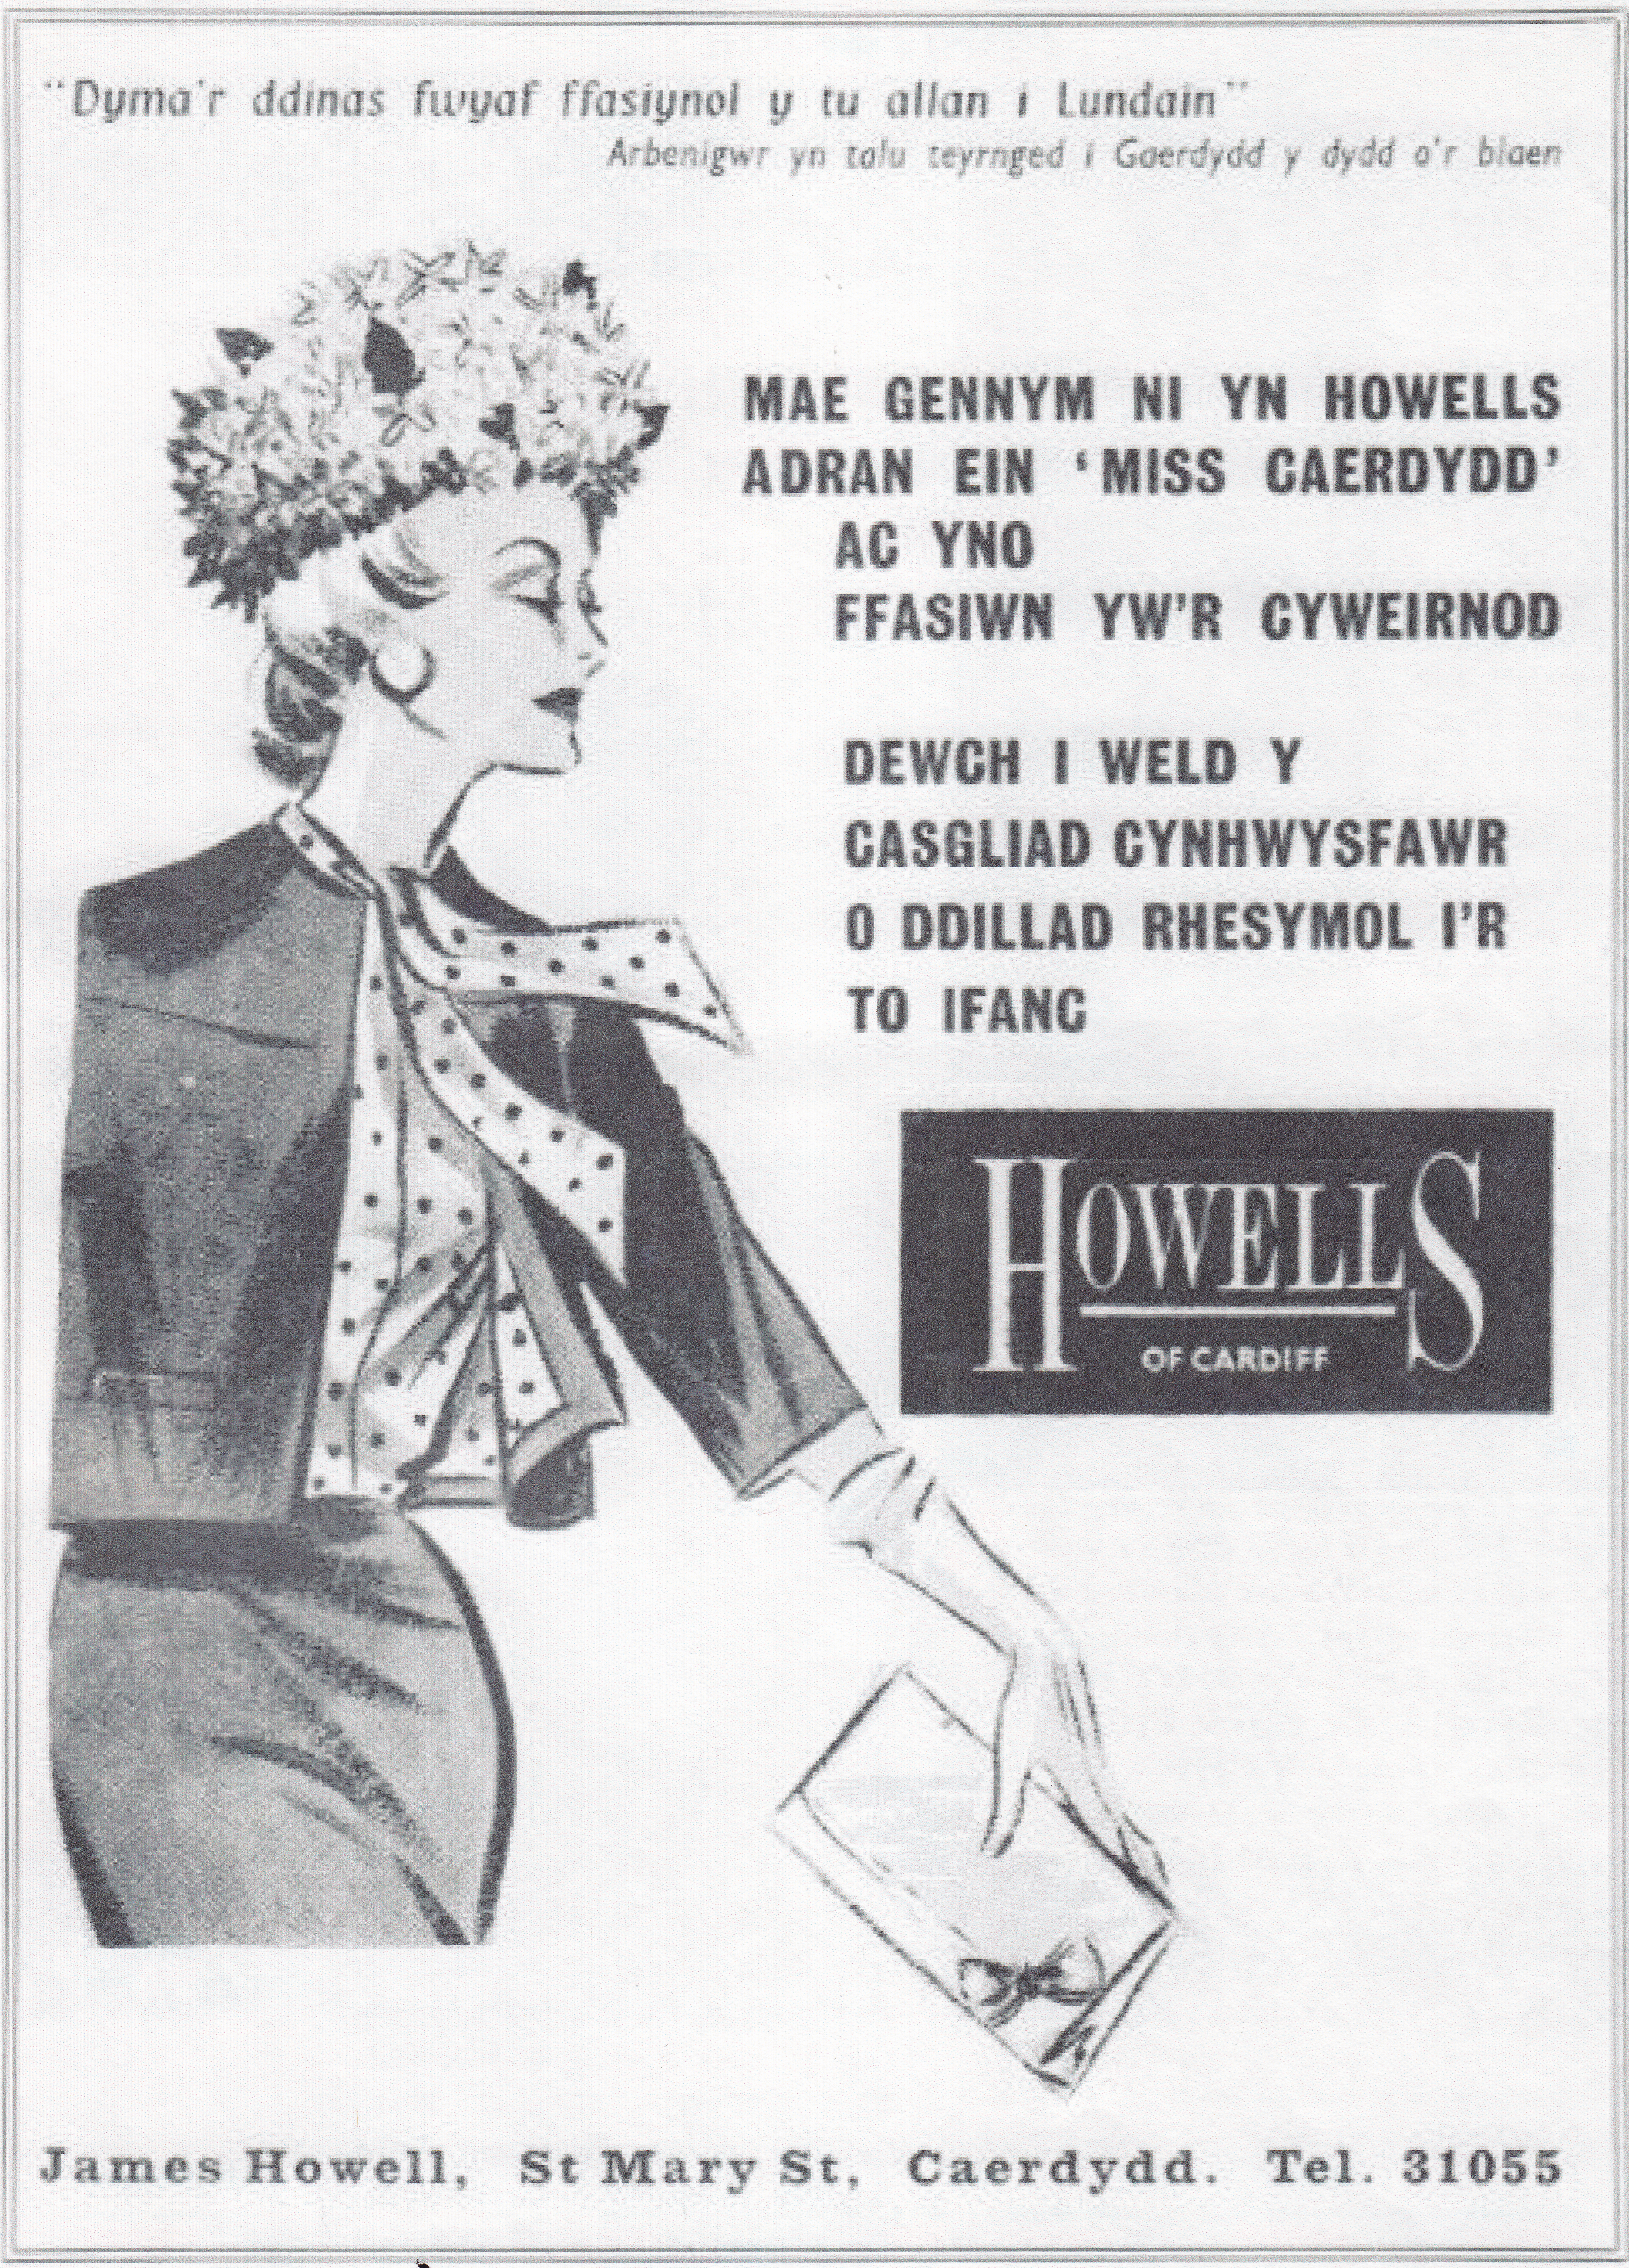 advertisement for howells cardiff from the welsh magazine hon welsh